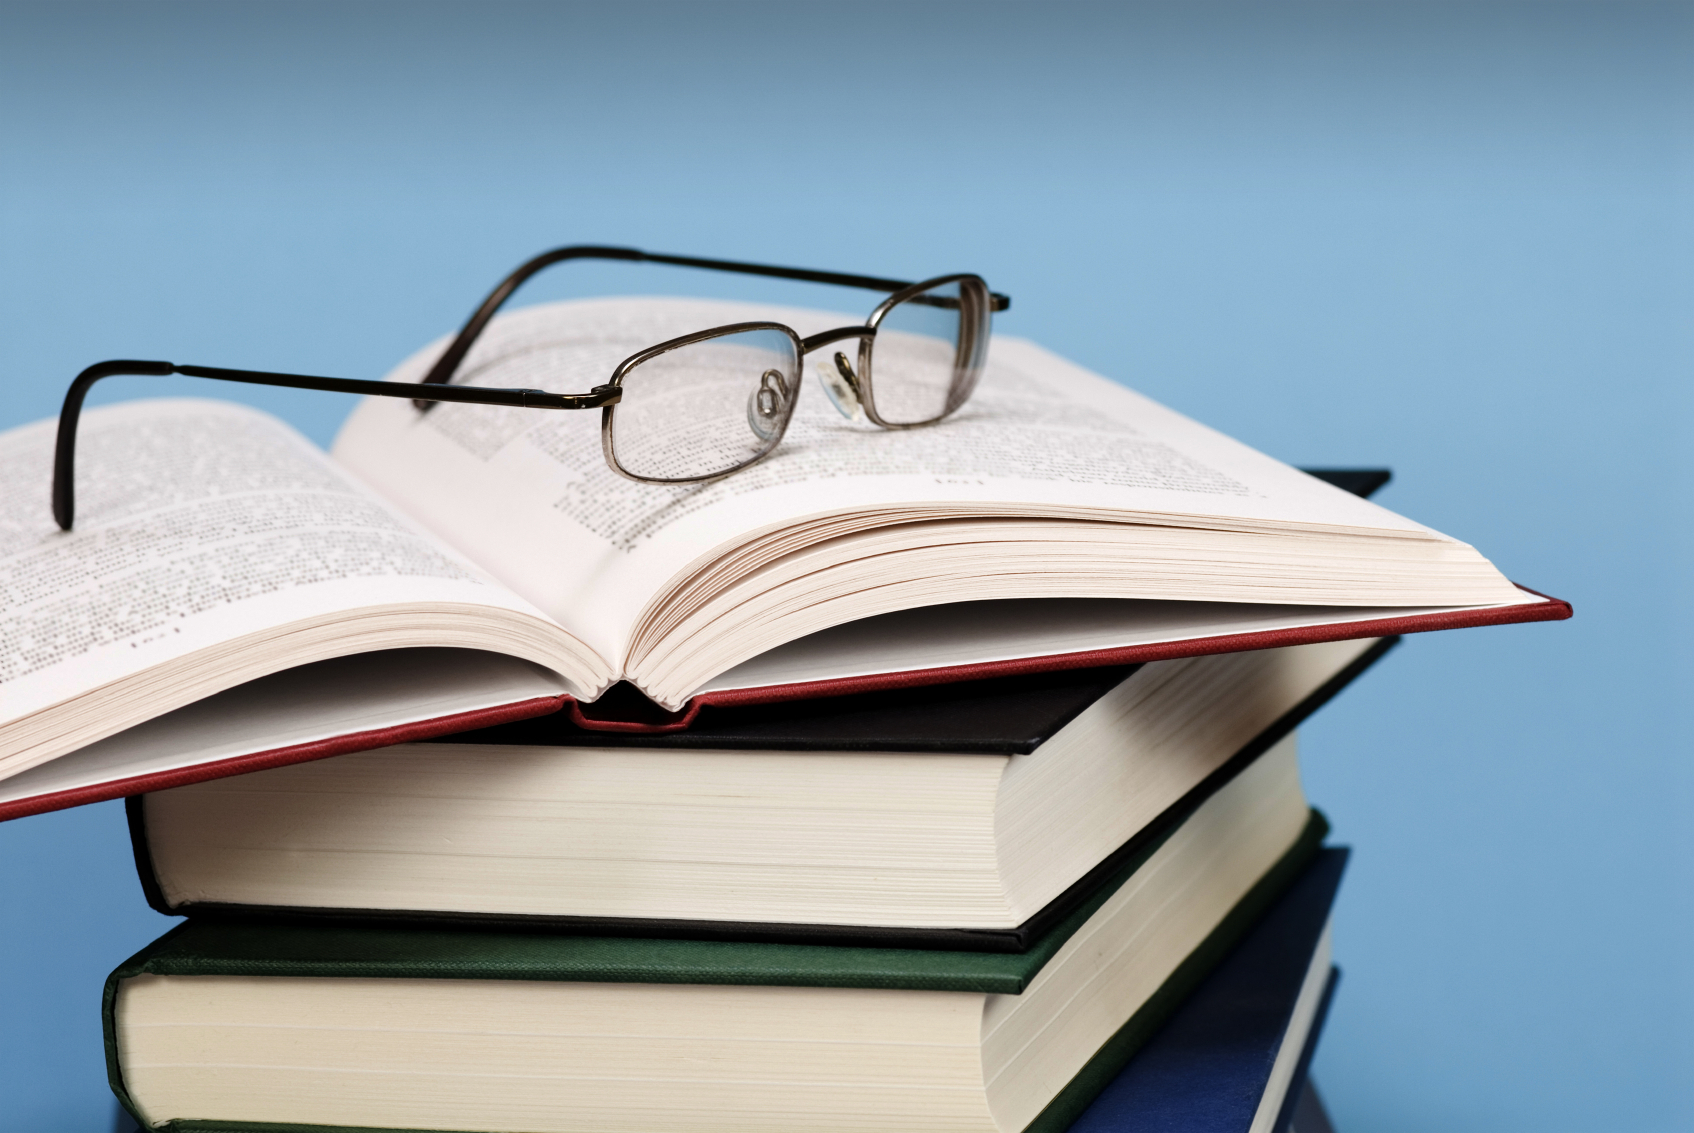 tips for effective literature searching and keeping up with new